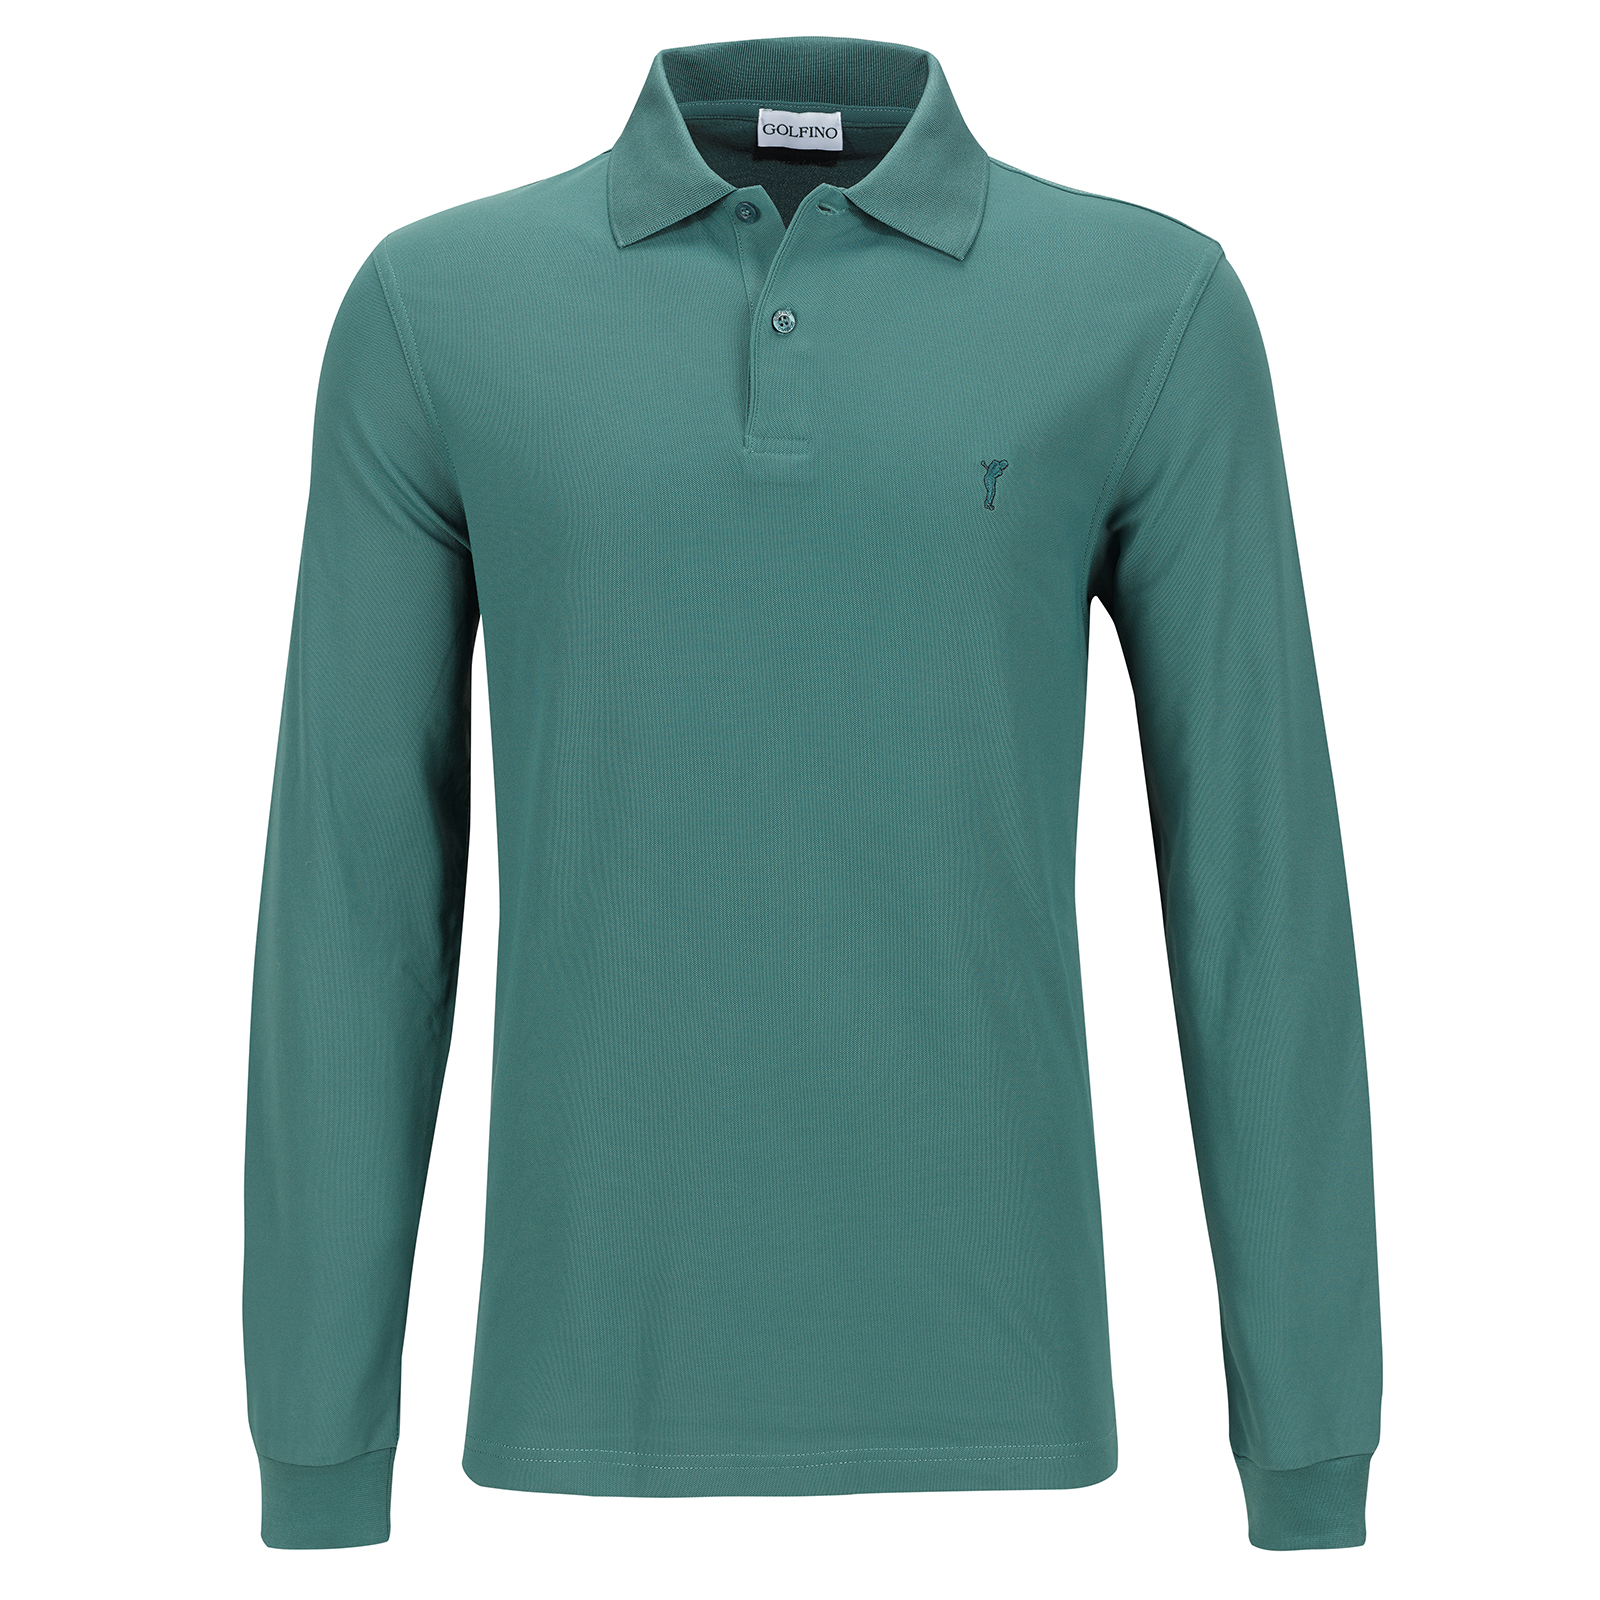 Herren Langarm Basic-Golfpolo mit Moisture Management in Regular Fit